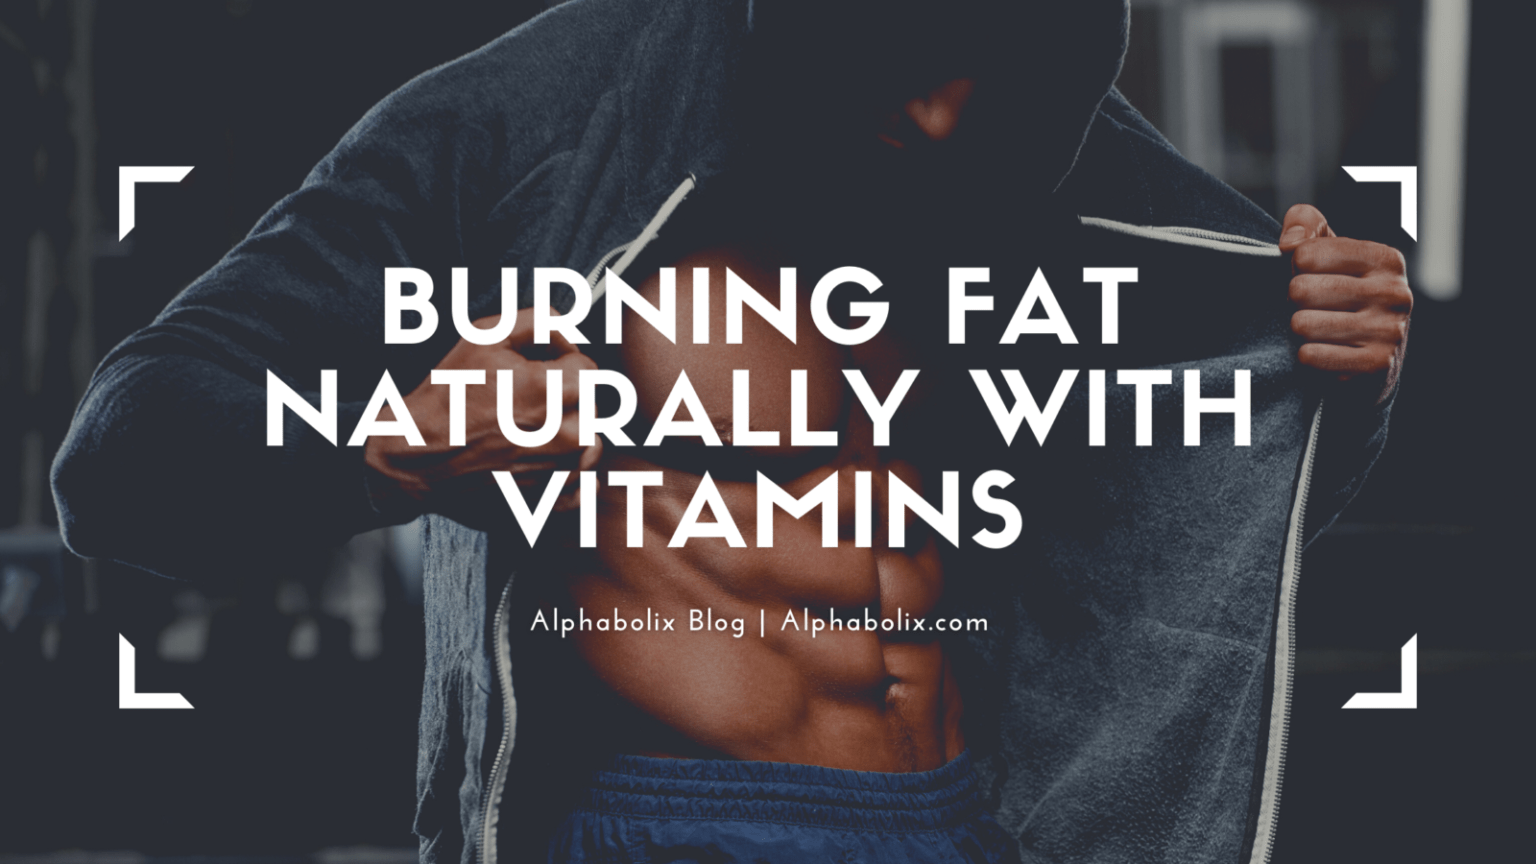 Burning Fat Naturally With Vitamins